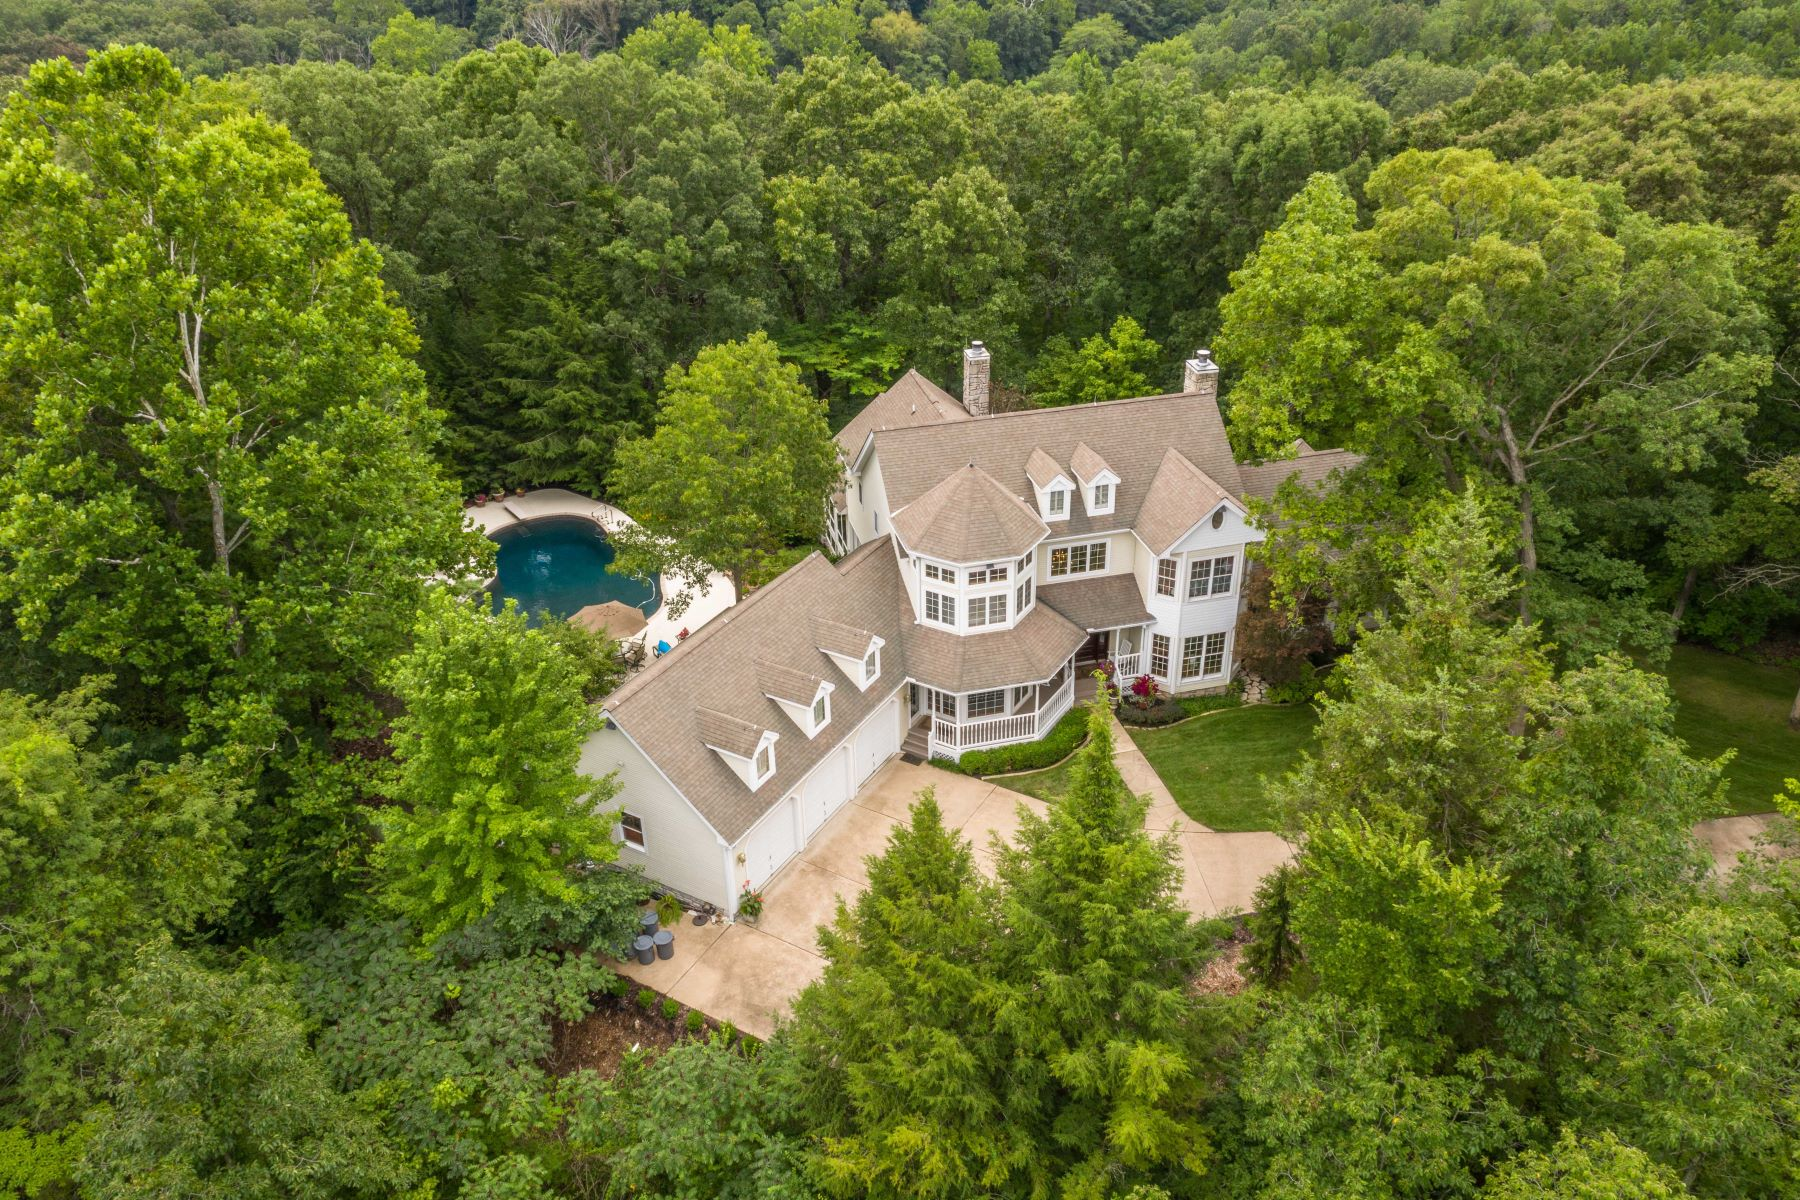 Single Family Homes για την Πώληση στο Exquisite Country Estate Nestled on Over 16 Lush Acres in Wildwood 2525 Ossenfort Road, Glencoe, Μιζουρι 63038 Ηνωμένες Πολιτείες